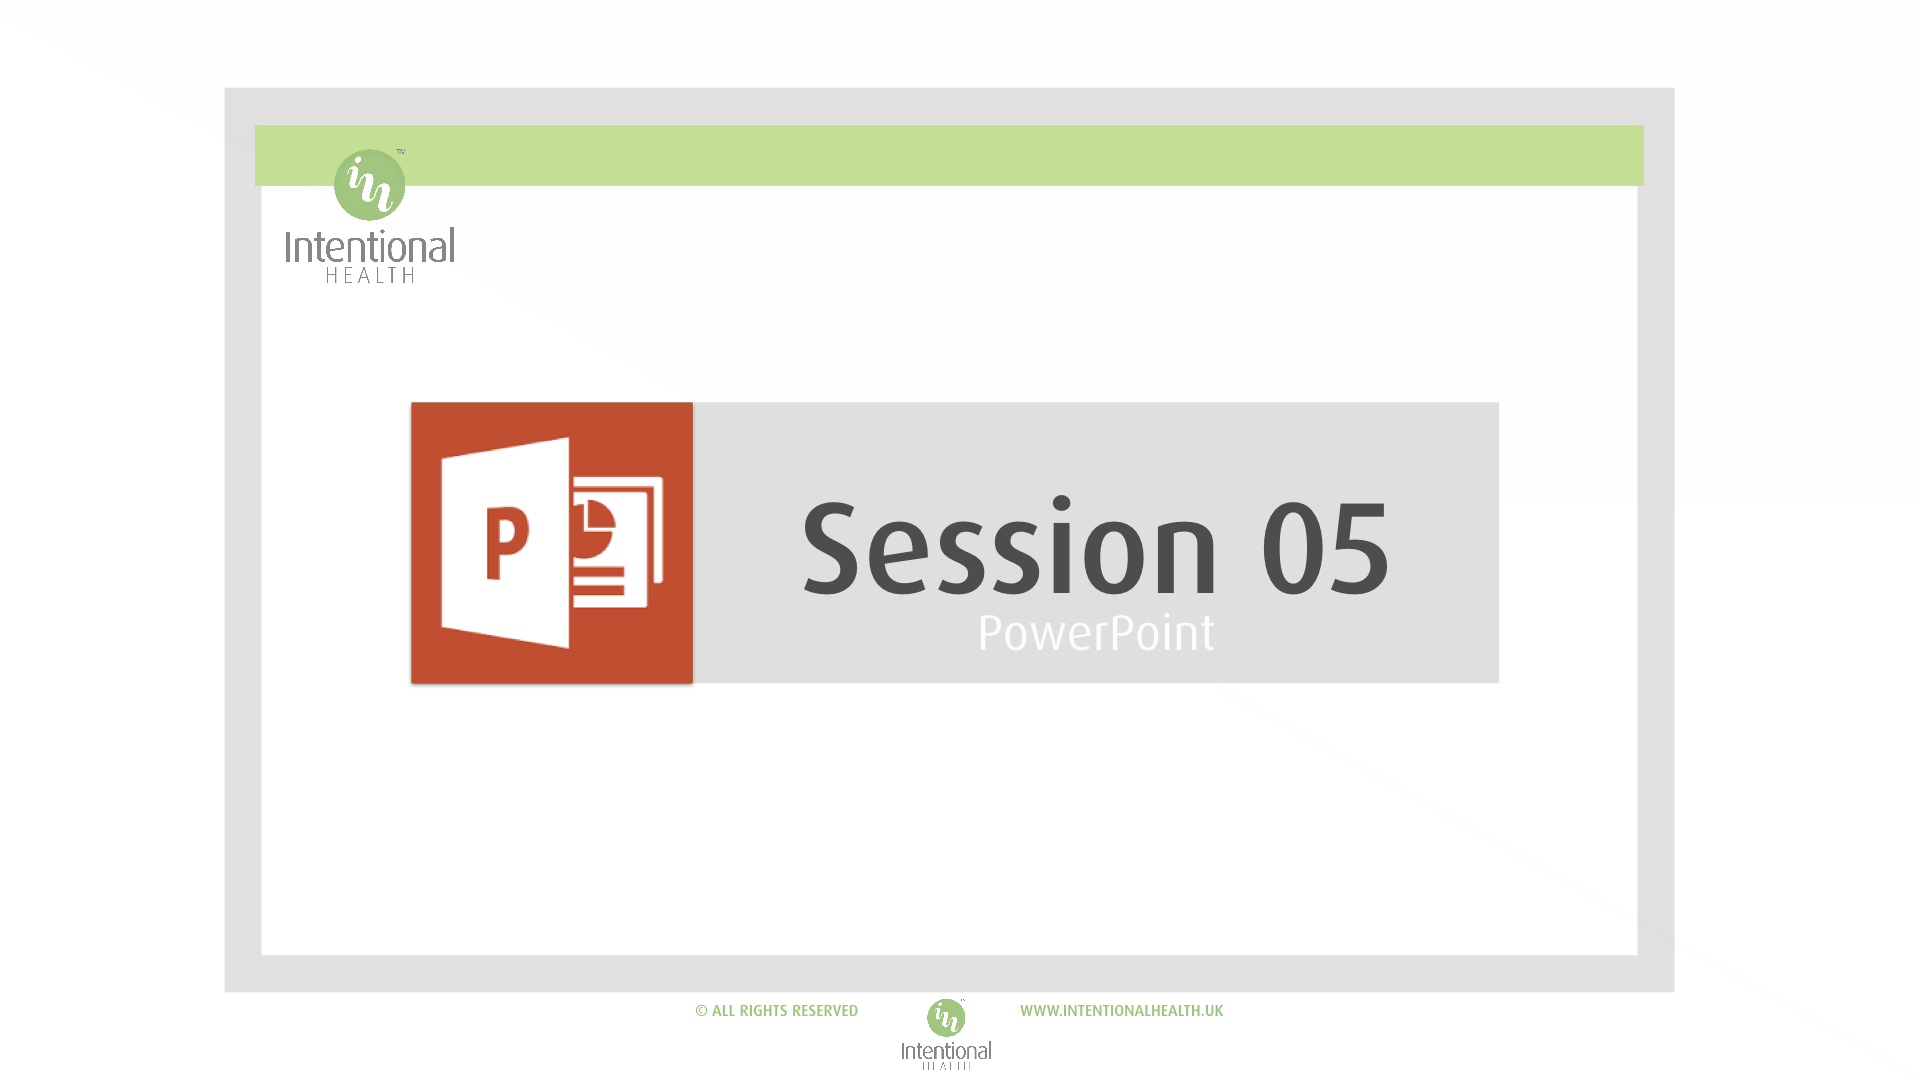 Session 05 Powerpoint